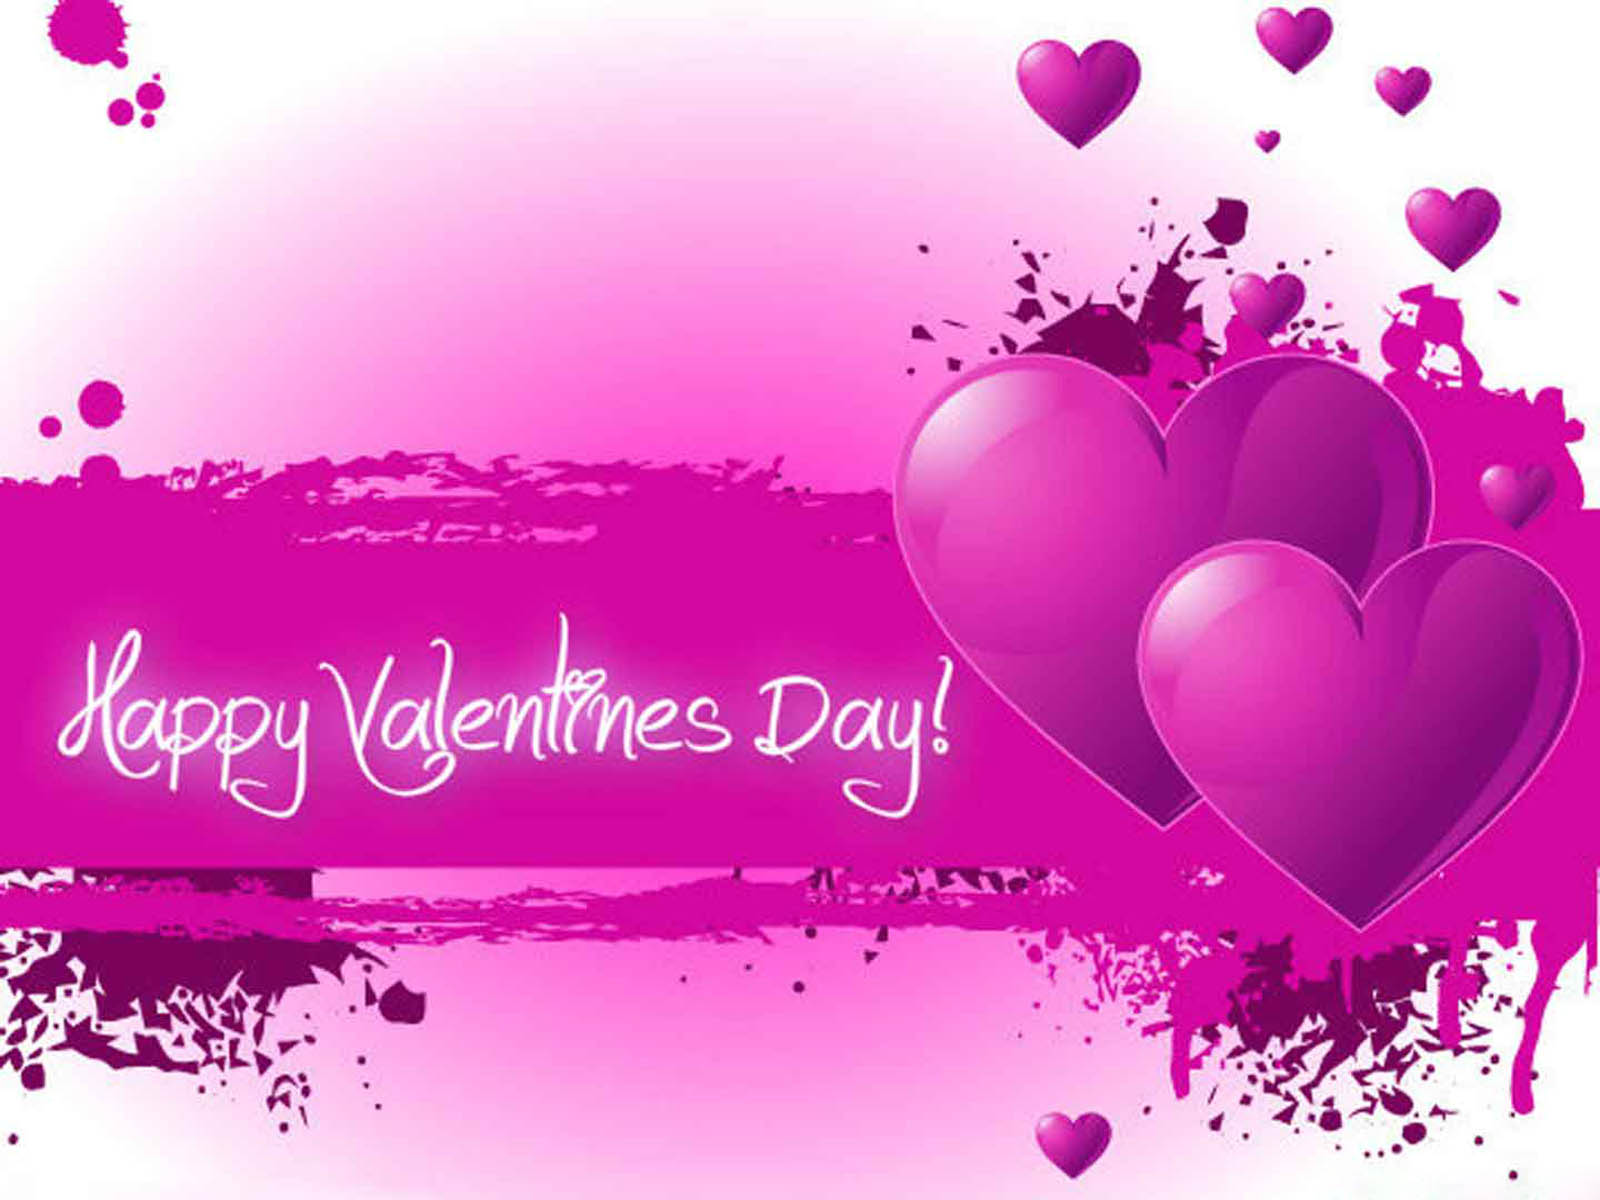 valentines day backgrounds wallpapers - photo #26